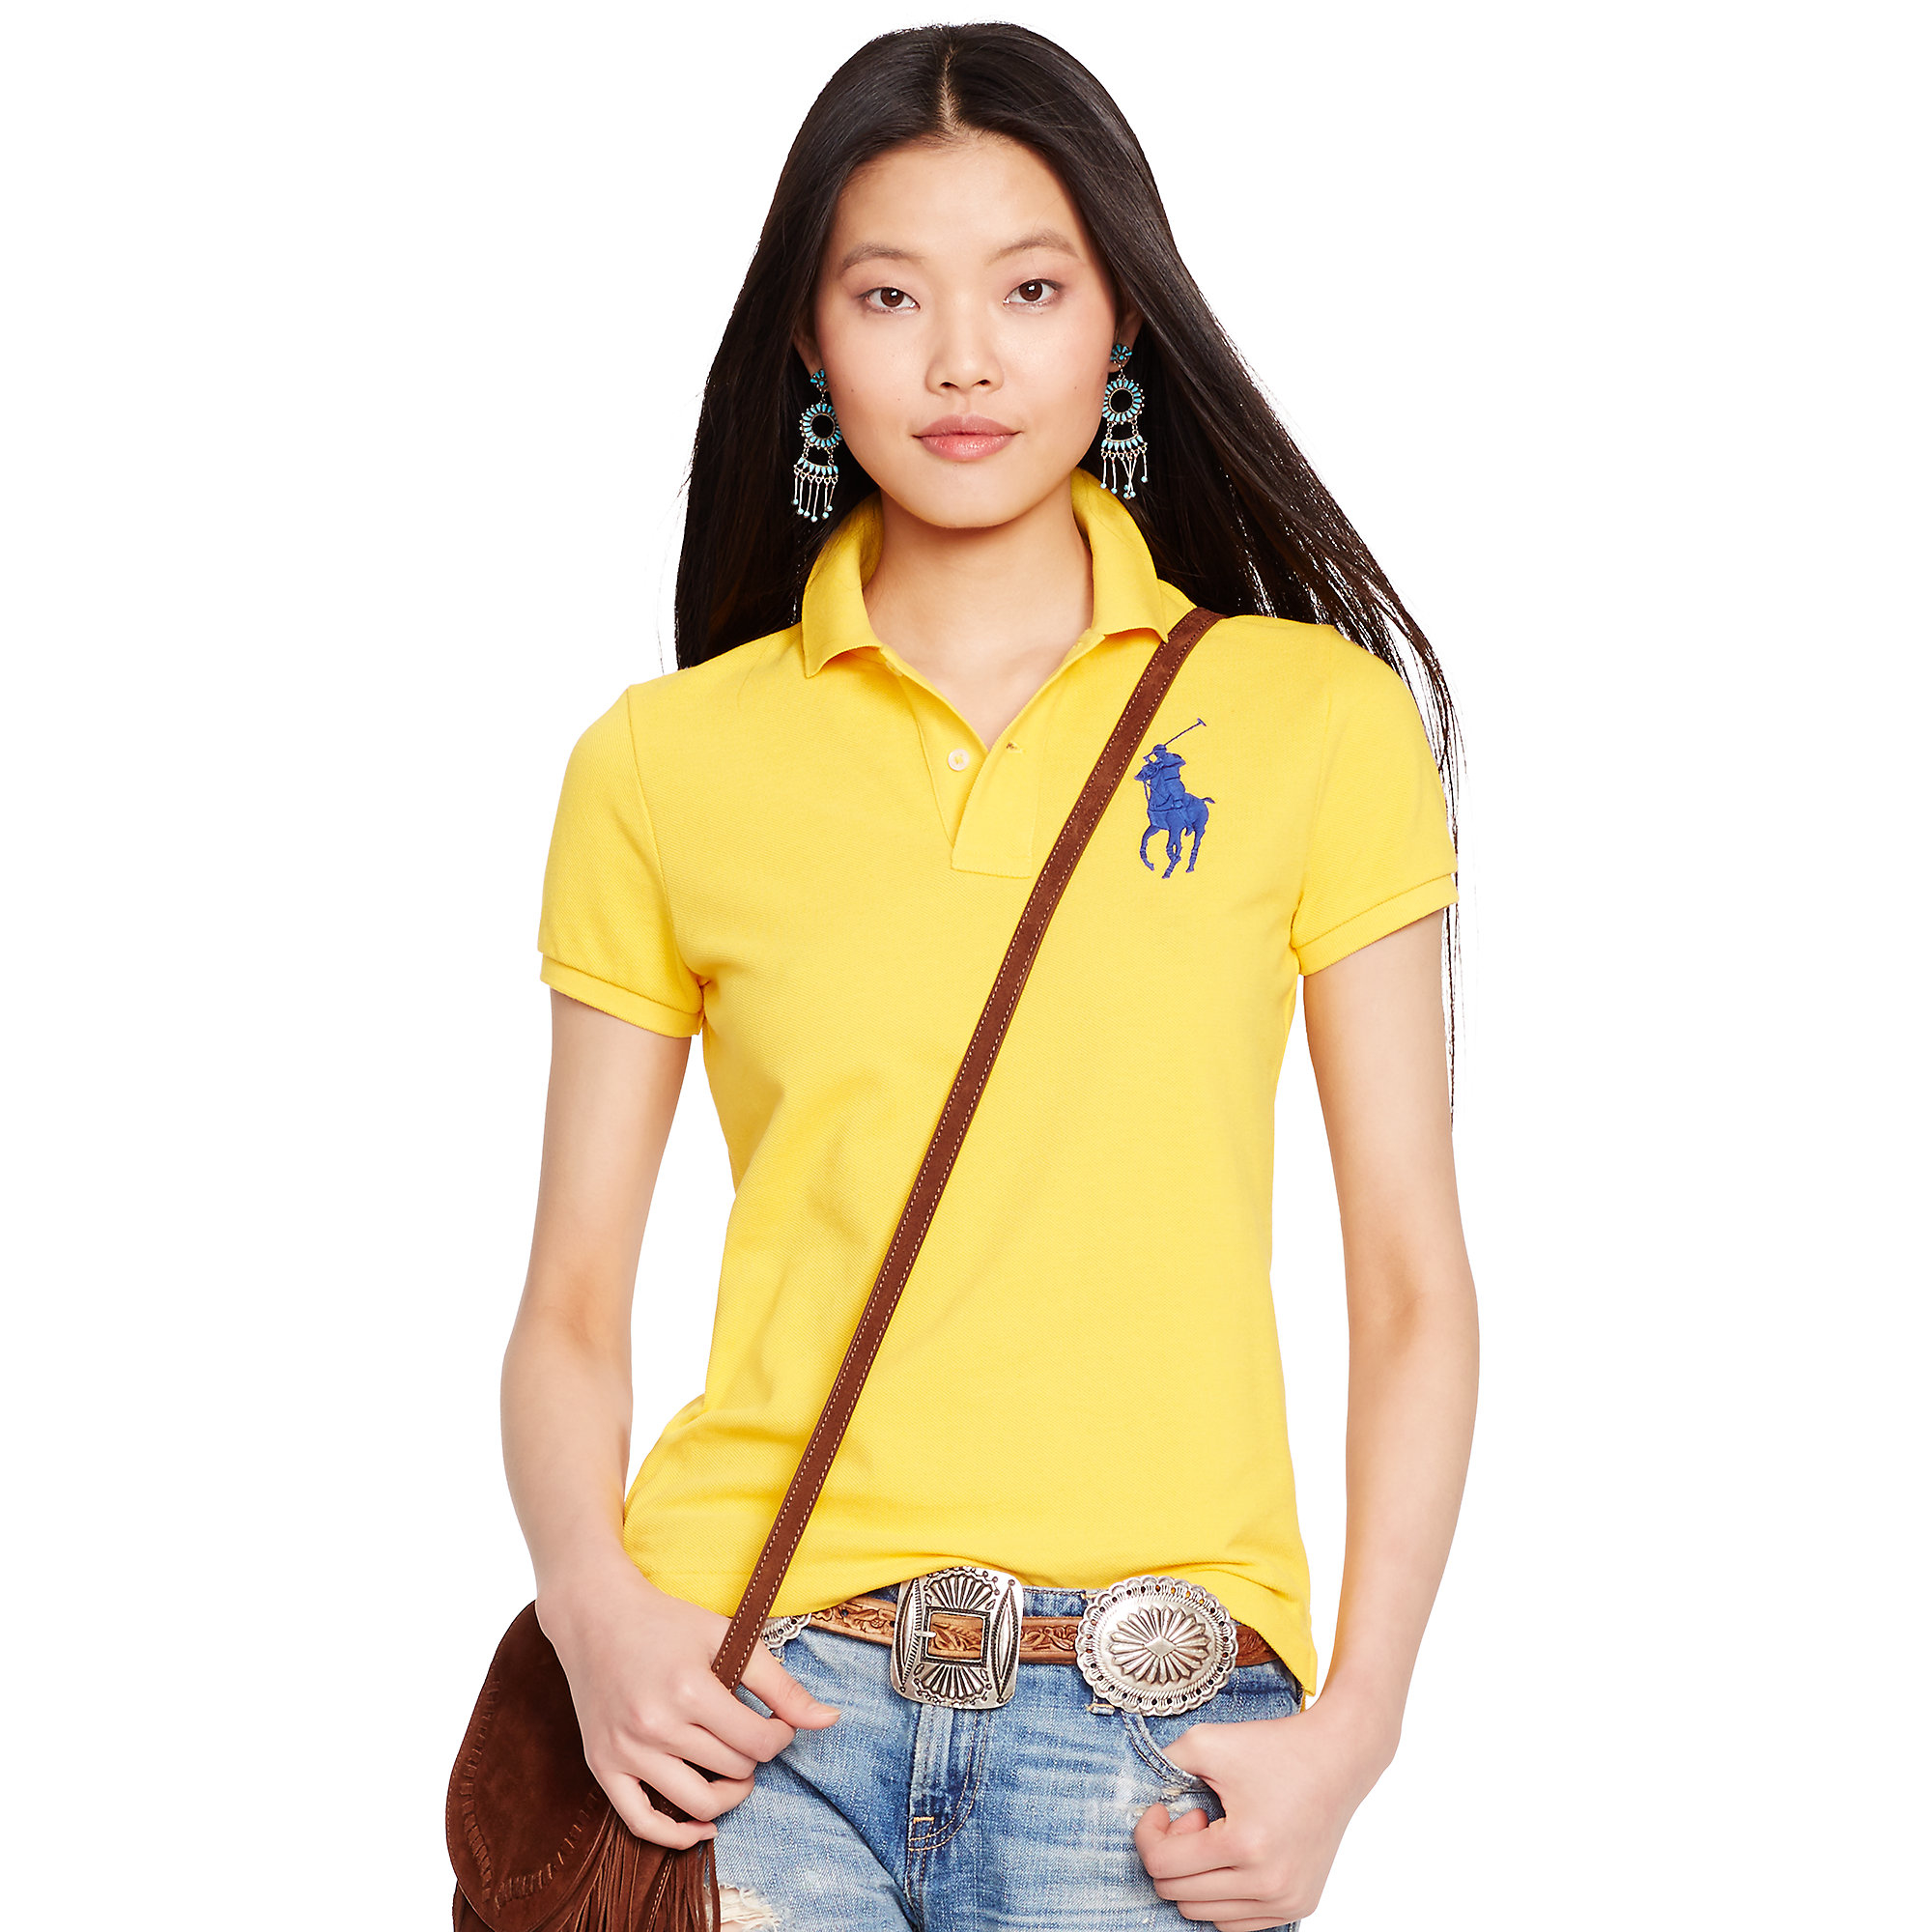 ca2227f4227423 Lyst - Polo Ralph Lauren Skinny-fit Big Pony Polo Shirt in Yellow